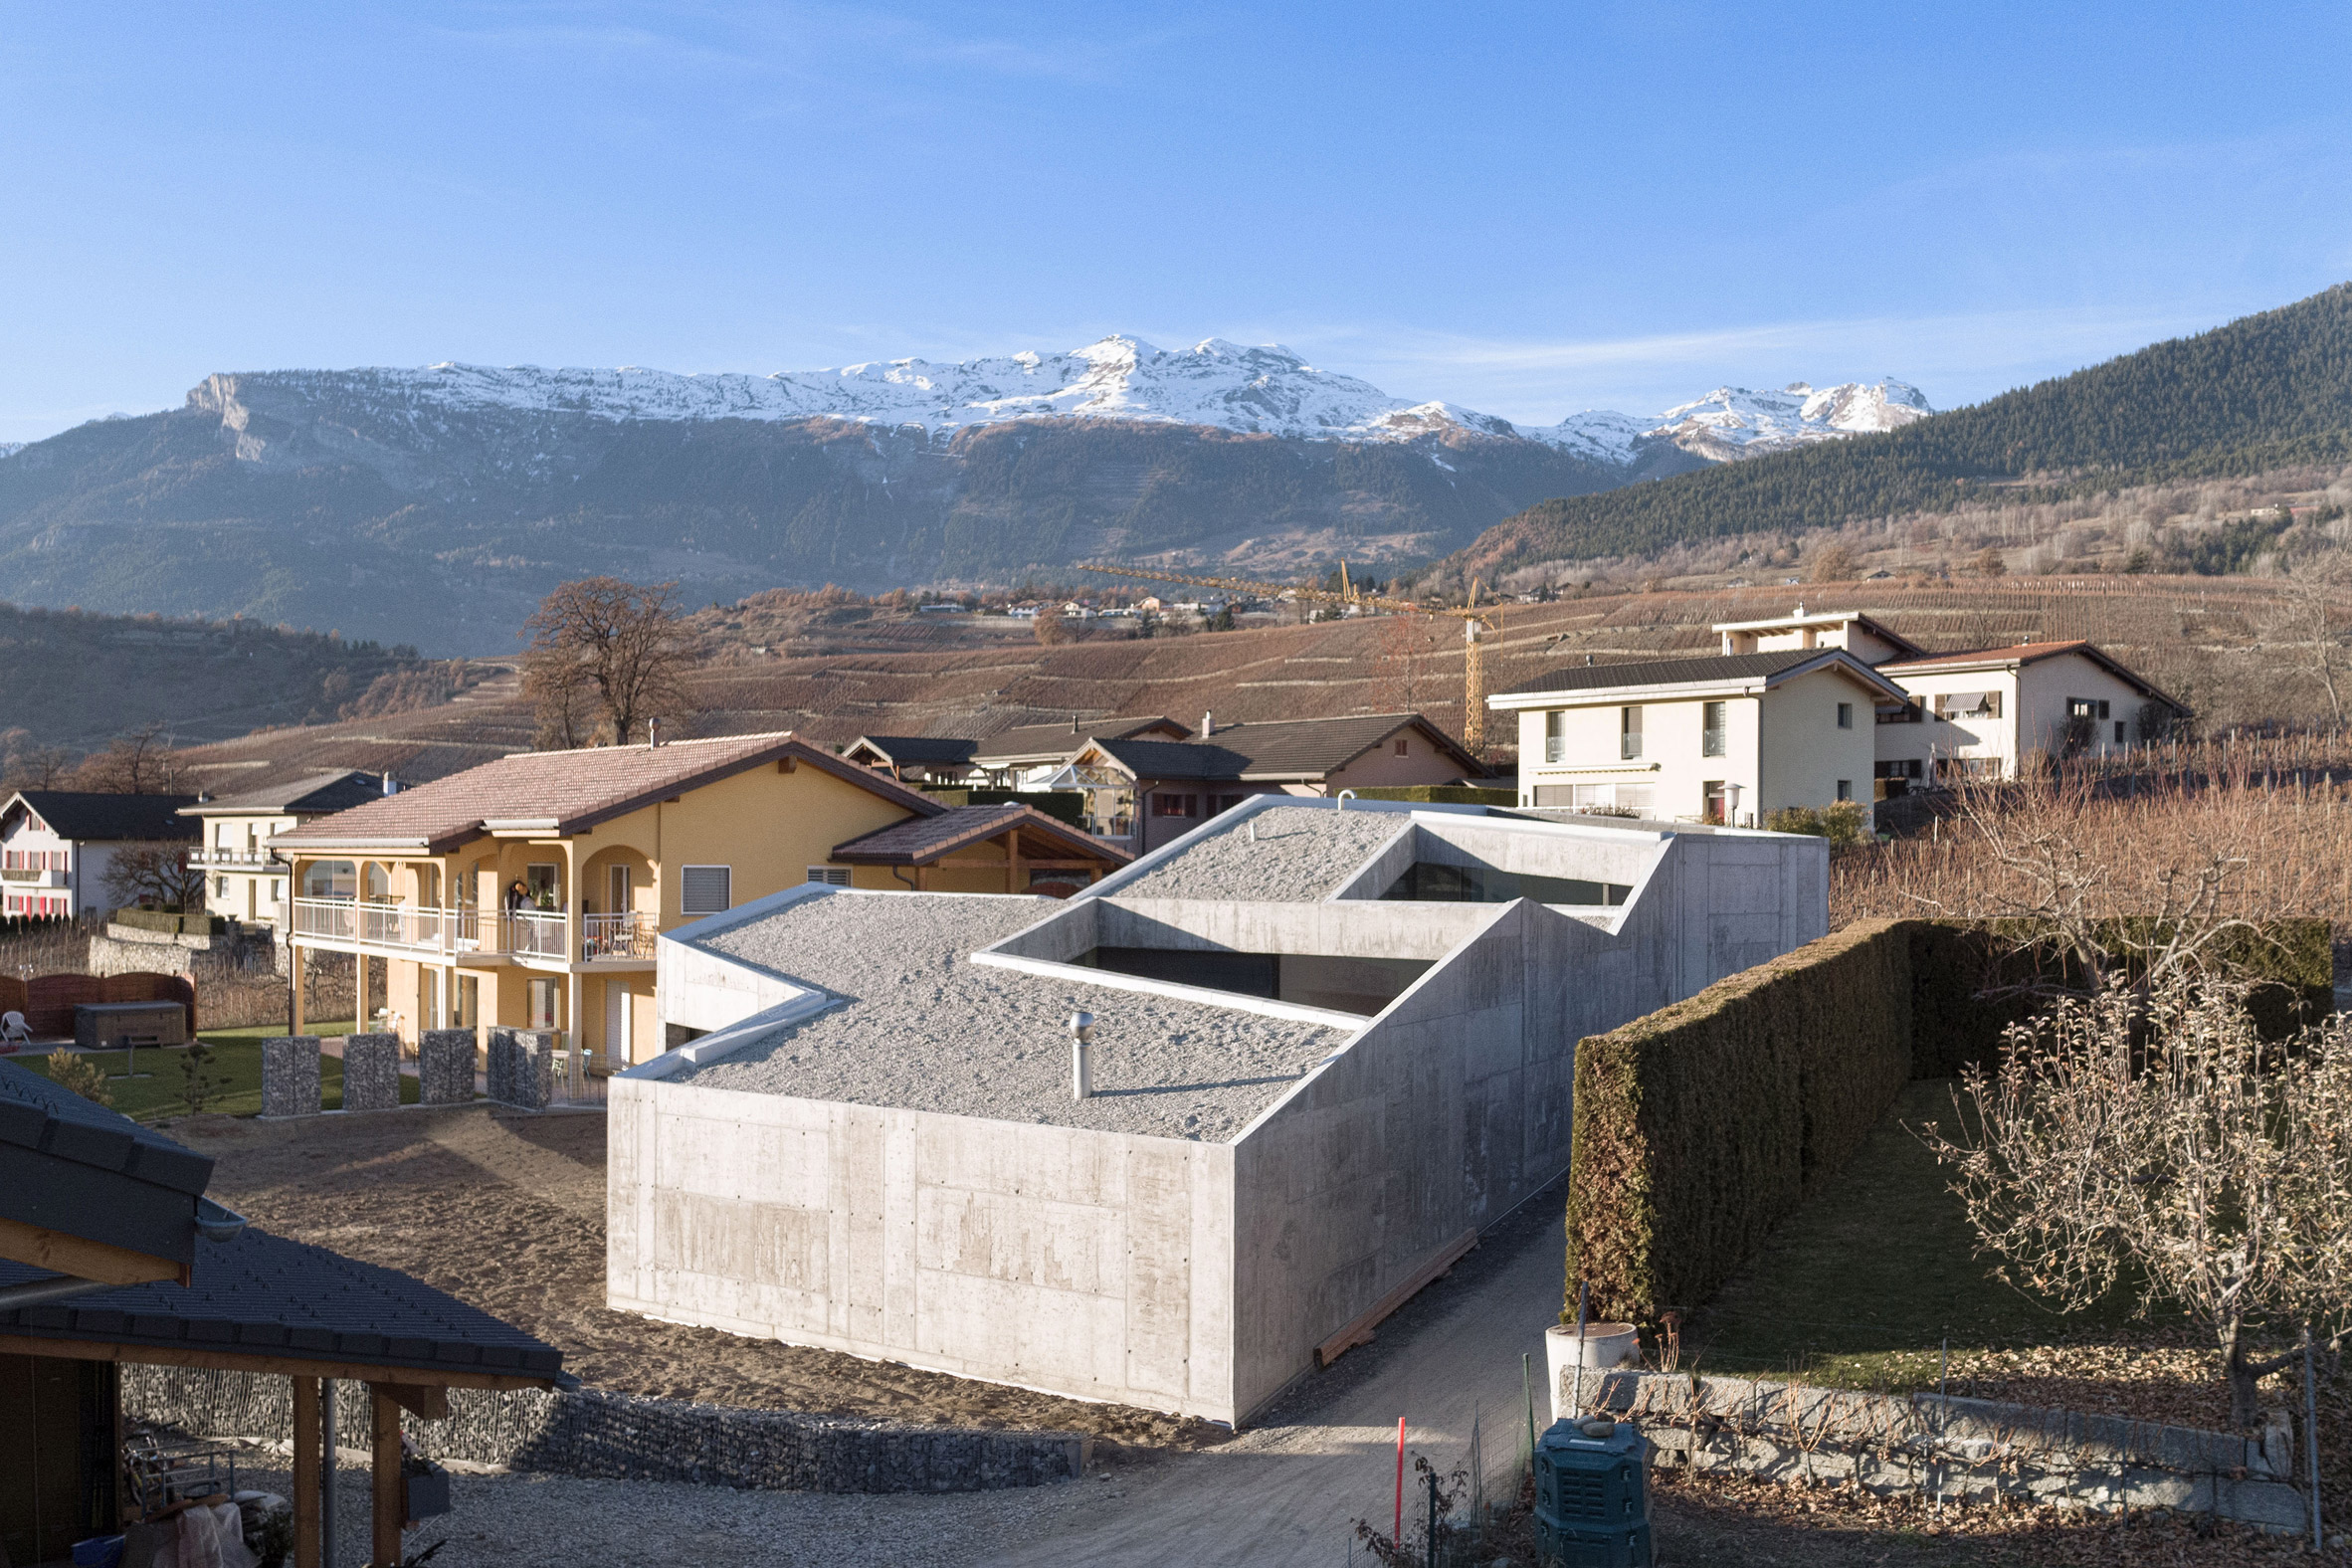 """Anako Architecture completes """"fortress-like"""" concrete house in an Alpine town"""